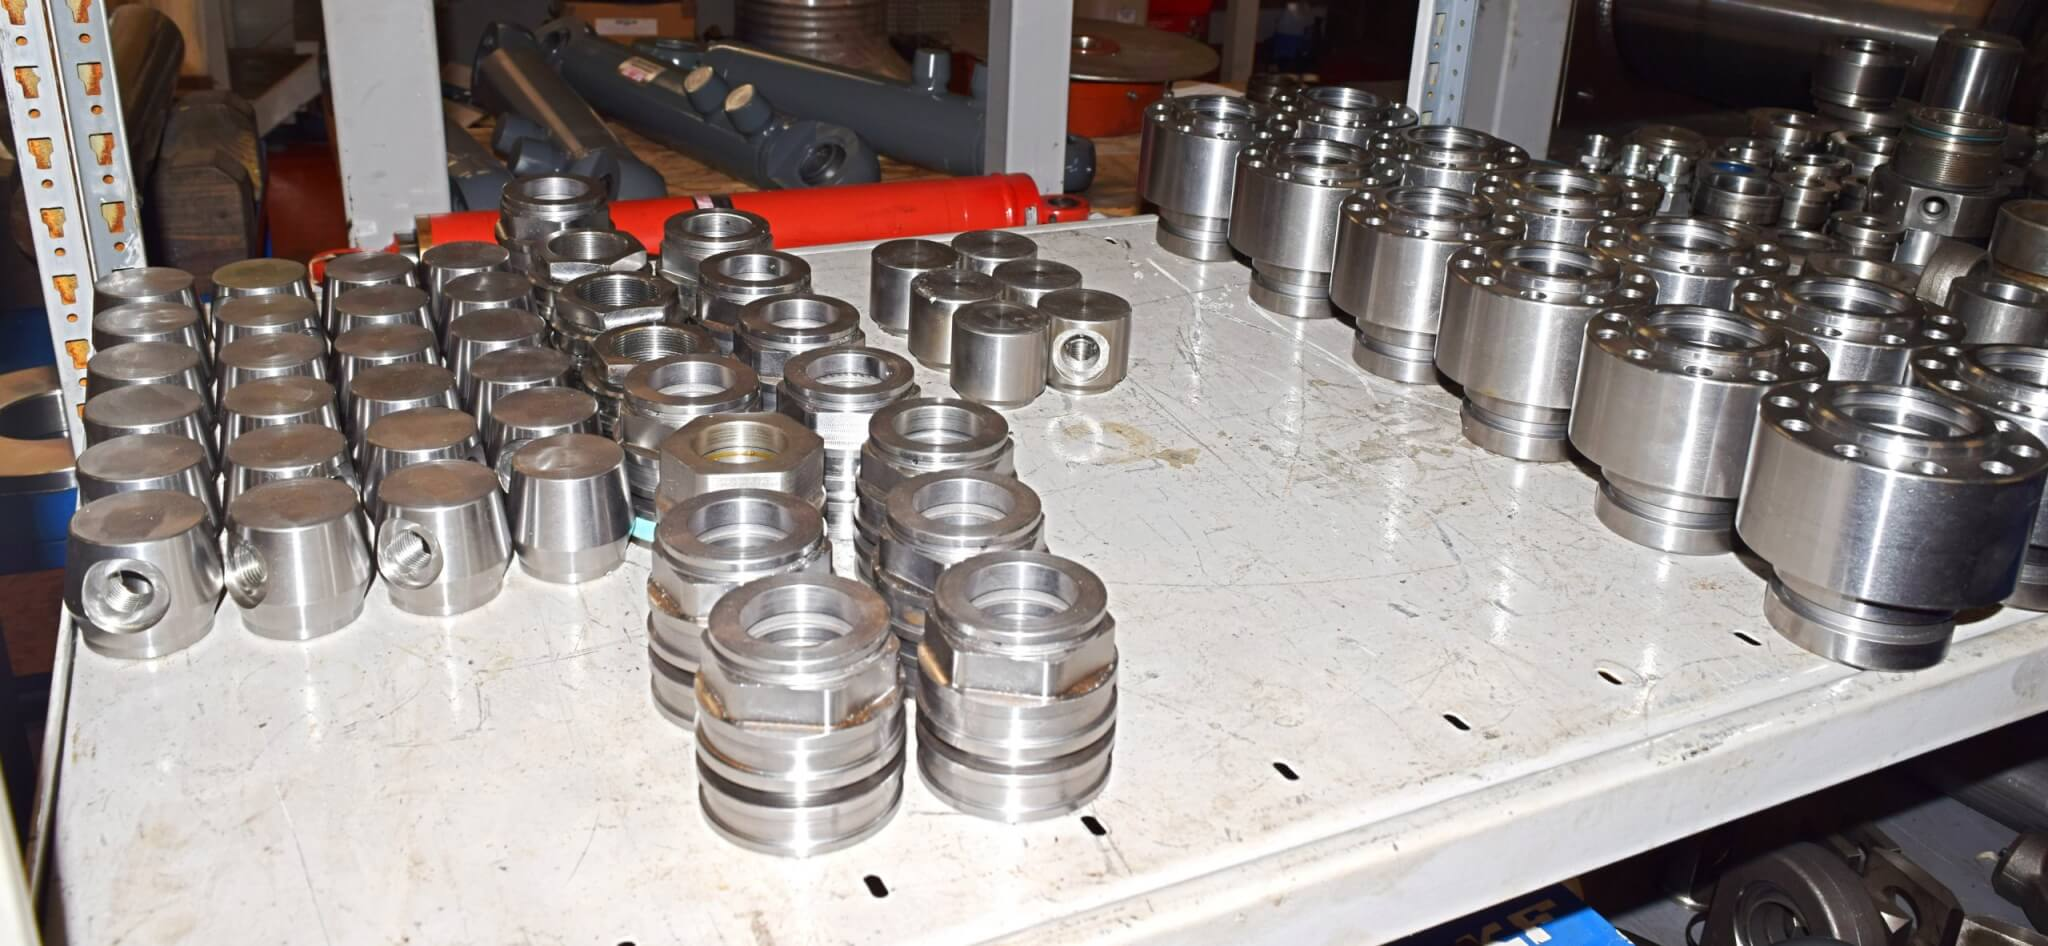 Liebherr machined parts